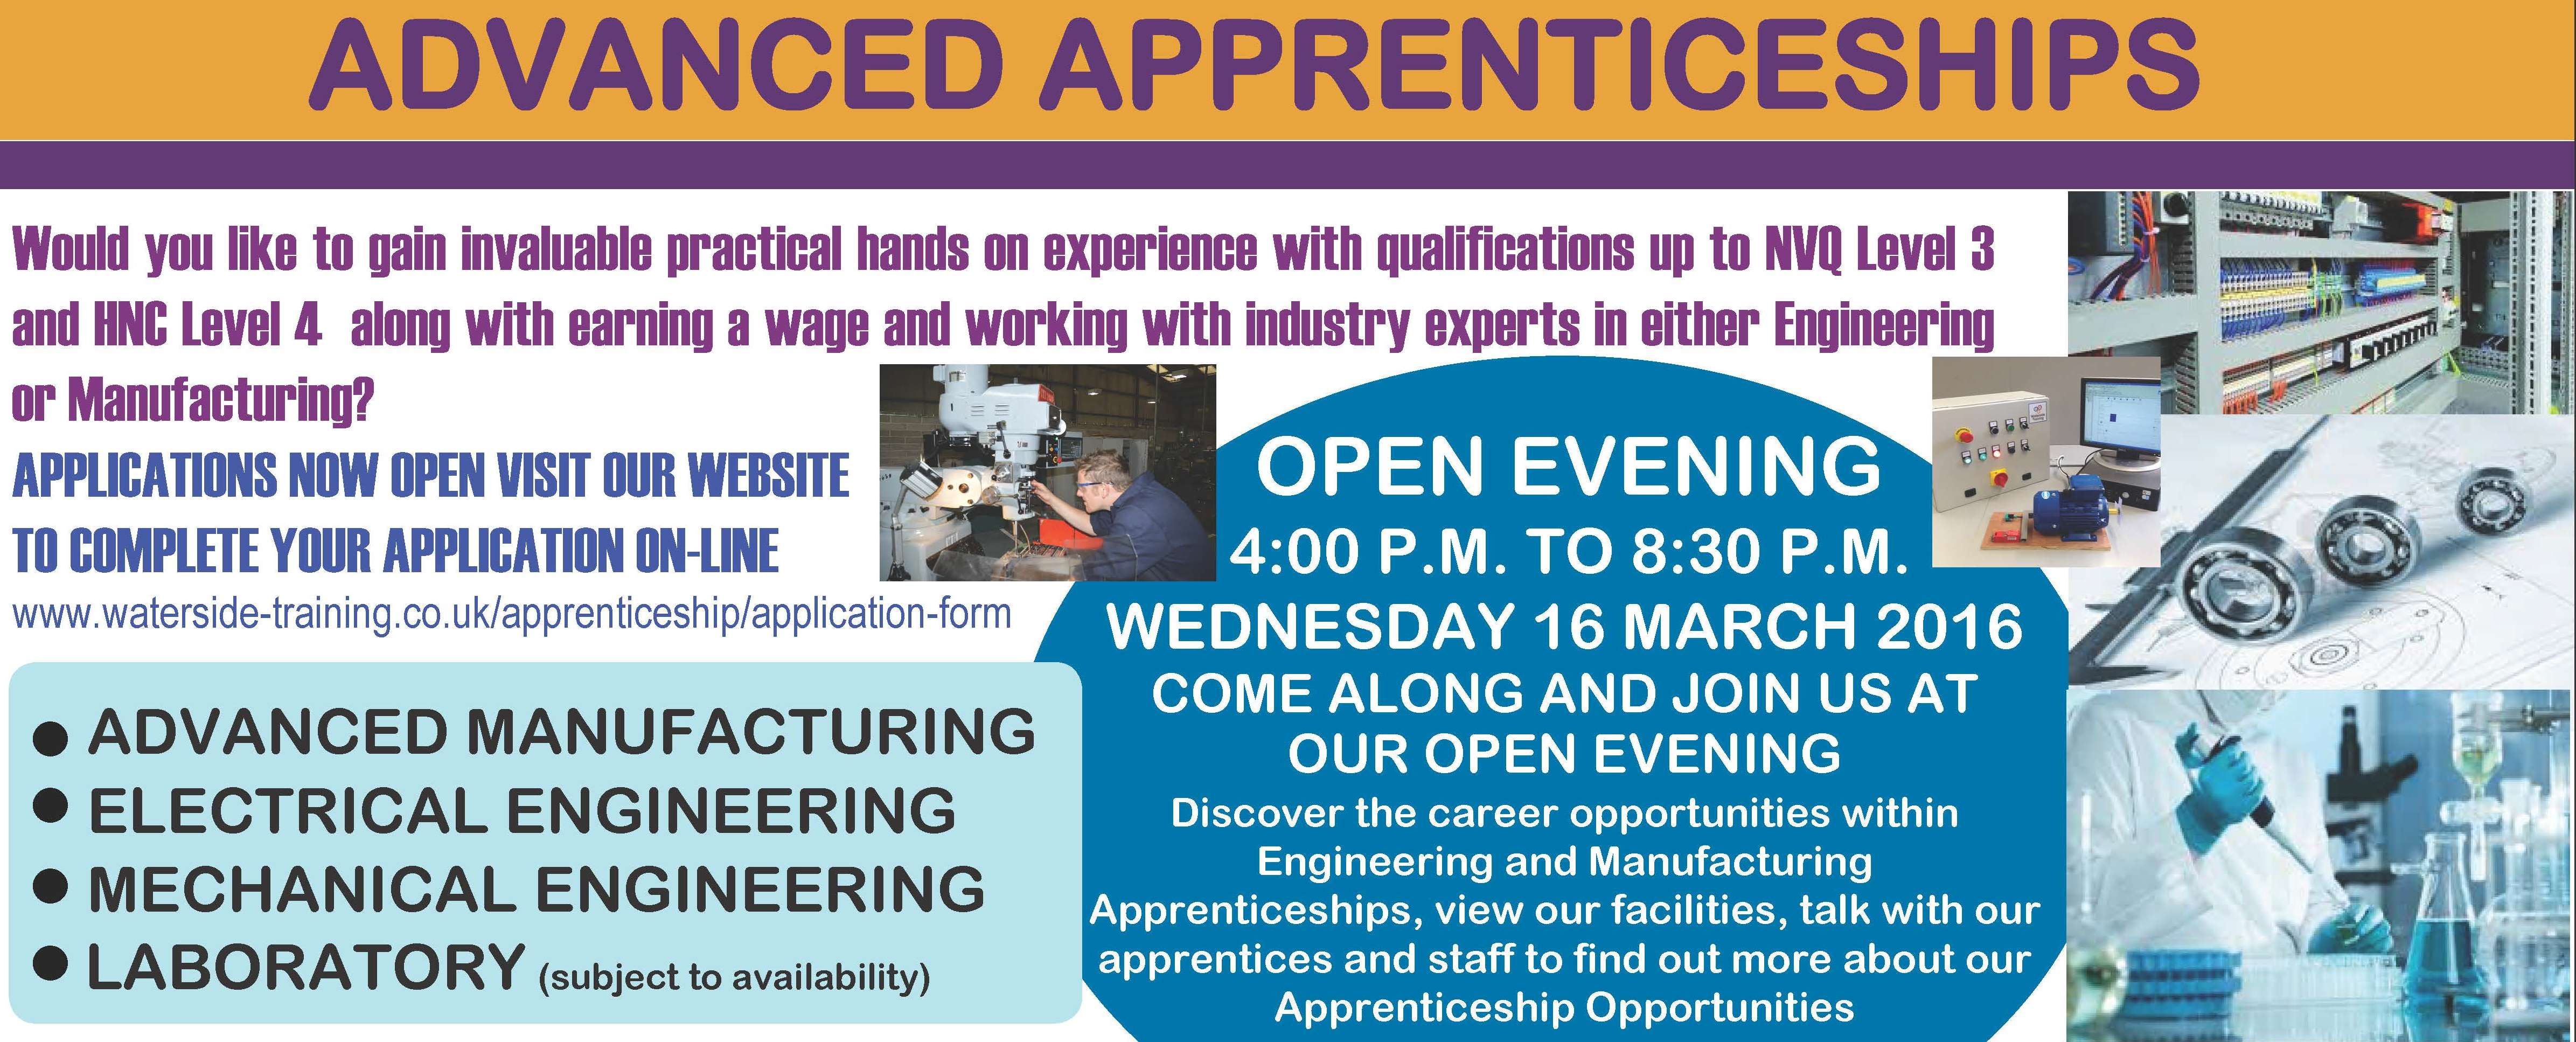 Waterside engineering apprenticeships open evening 16th March